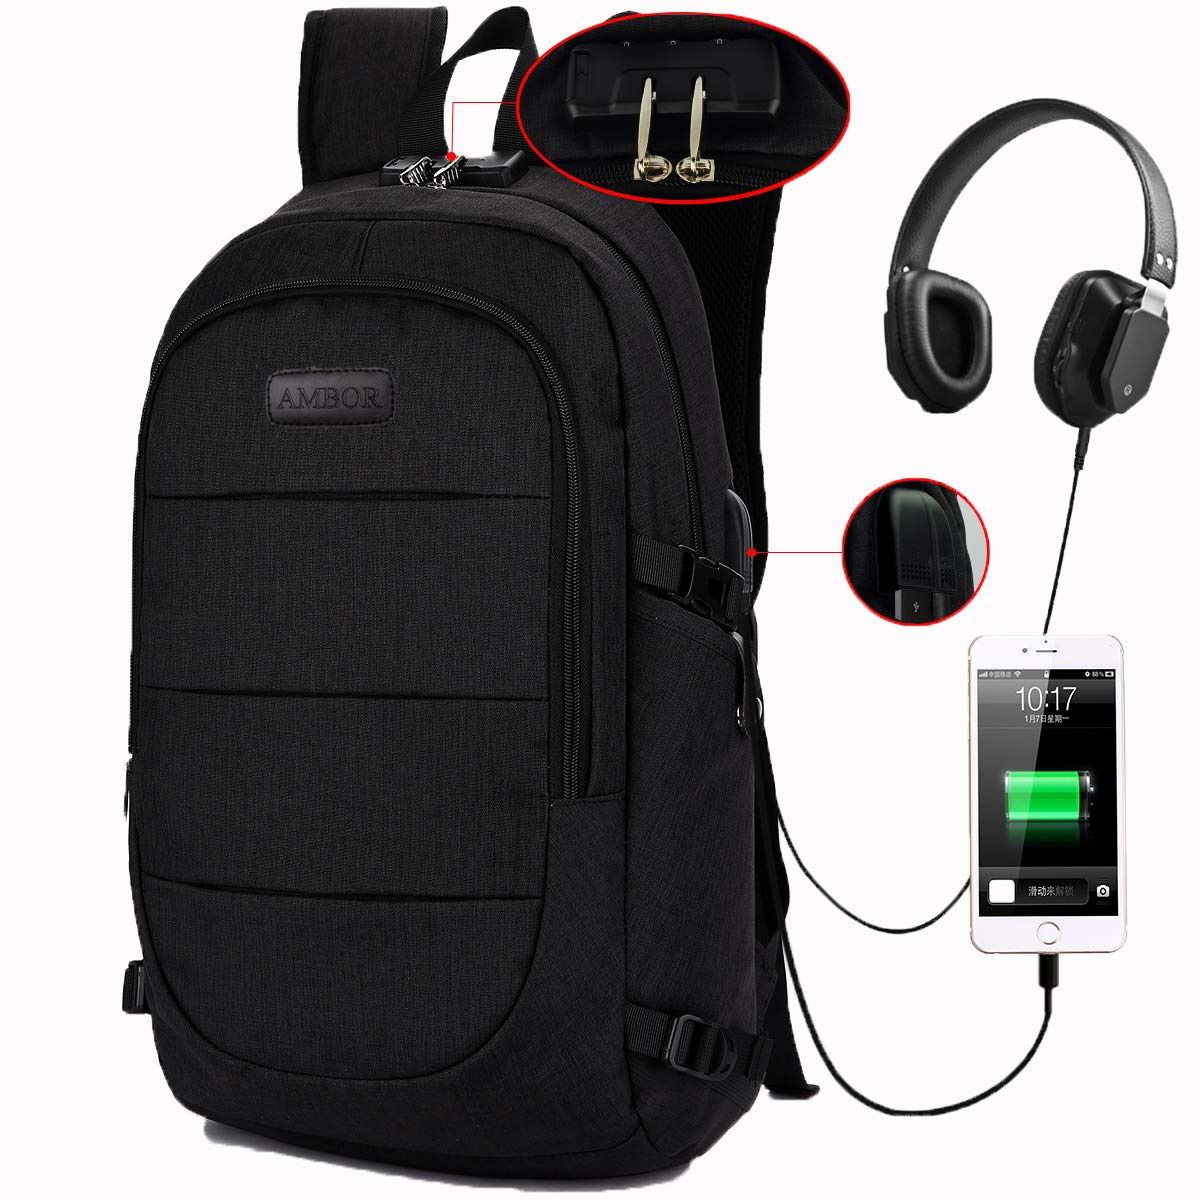 AMBOR Travel Laptop Backpack, Anti Theft Business Waterproof Laptop Backpack with USB Charging Port and Headphone Interface fits Under 15.6'' Laptop, for College Student Work Men & Women.Black by AMBOR